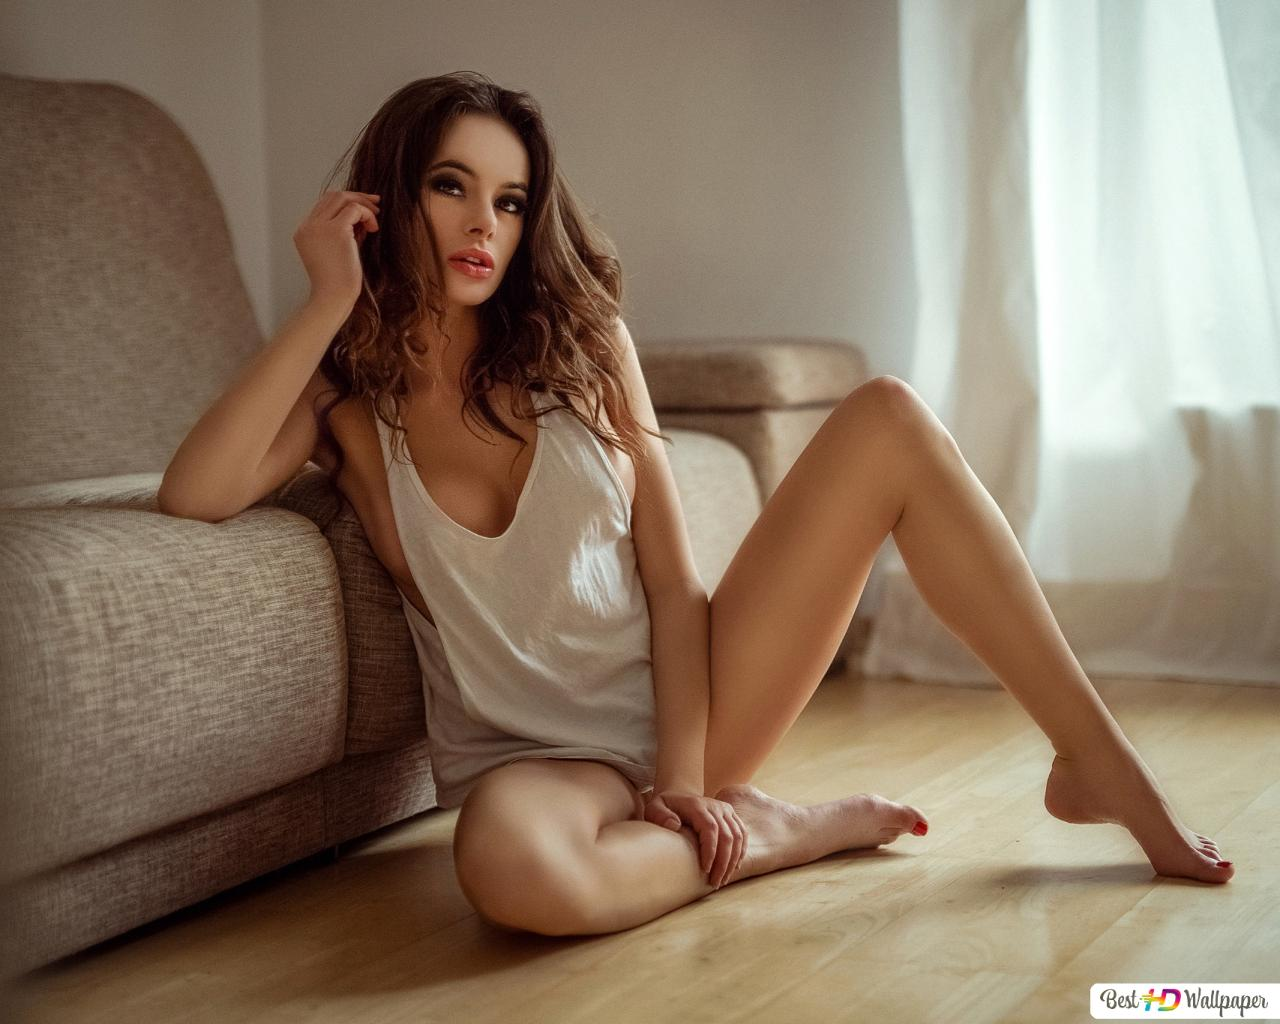 Sexy Girl Sitting On The Floor Hd Wallpaper Download-6897